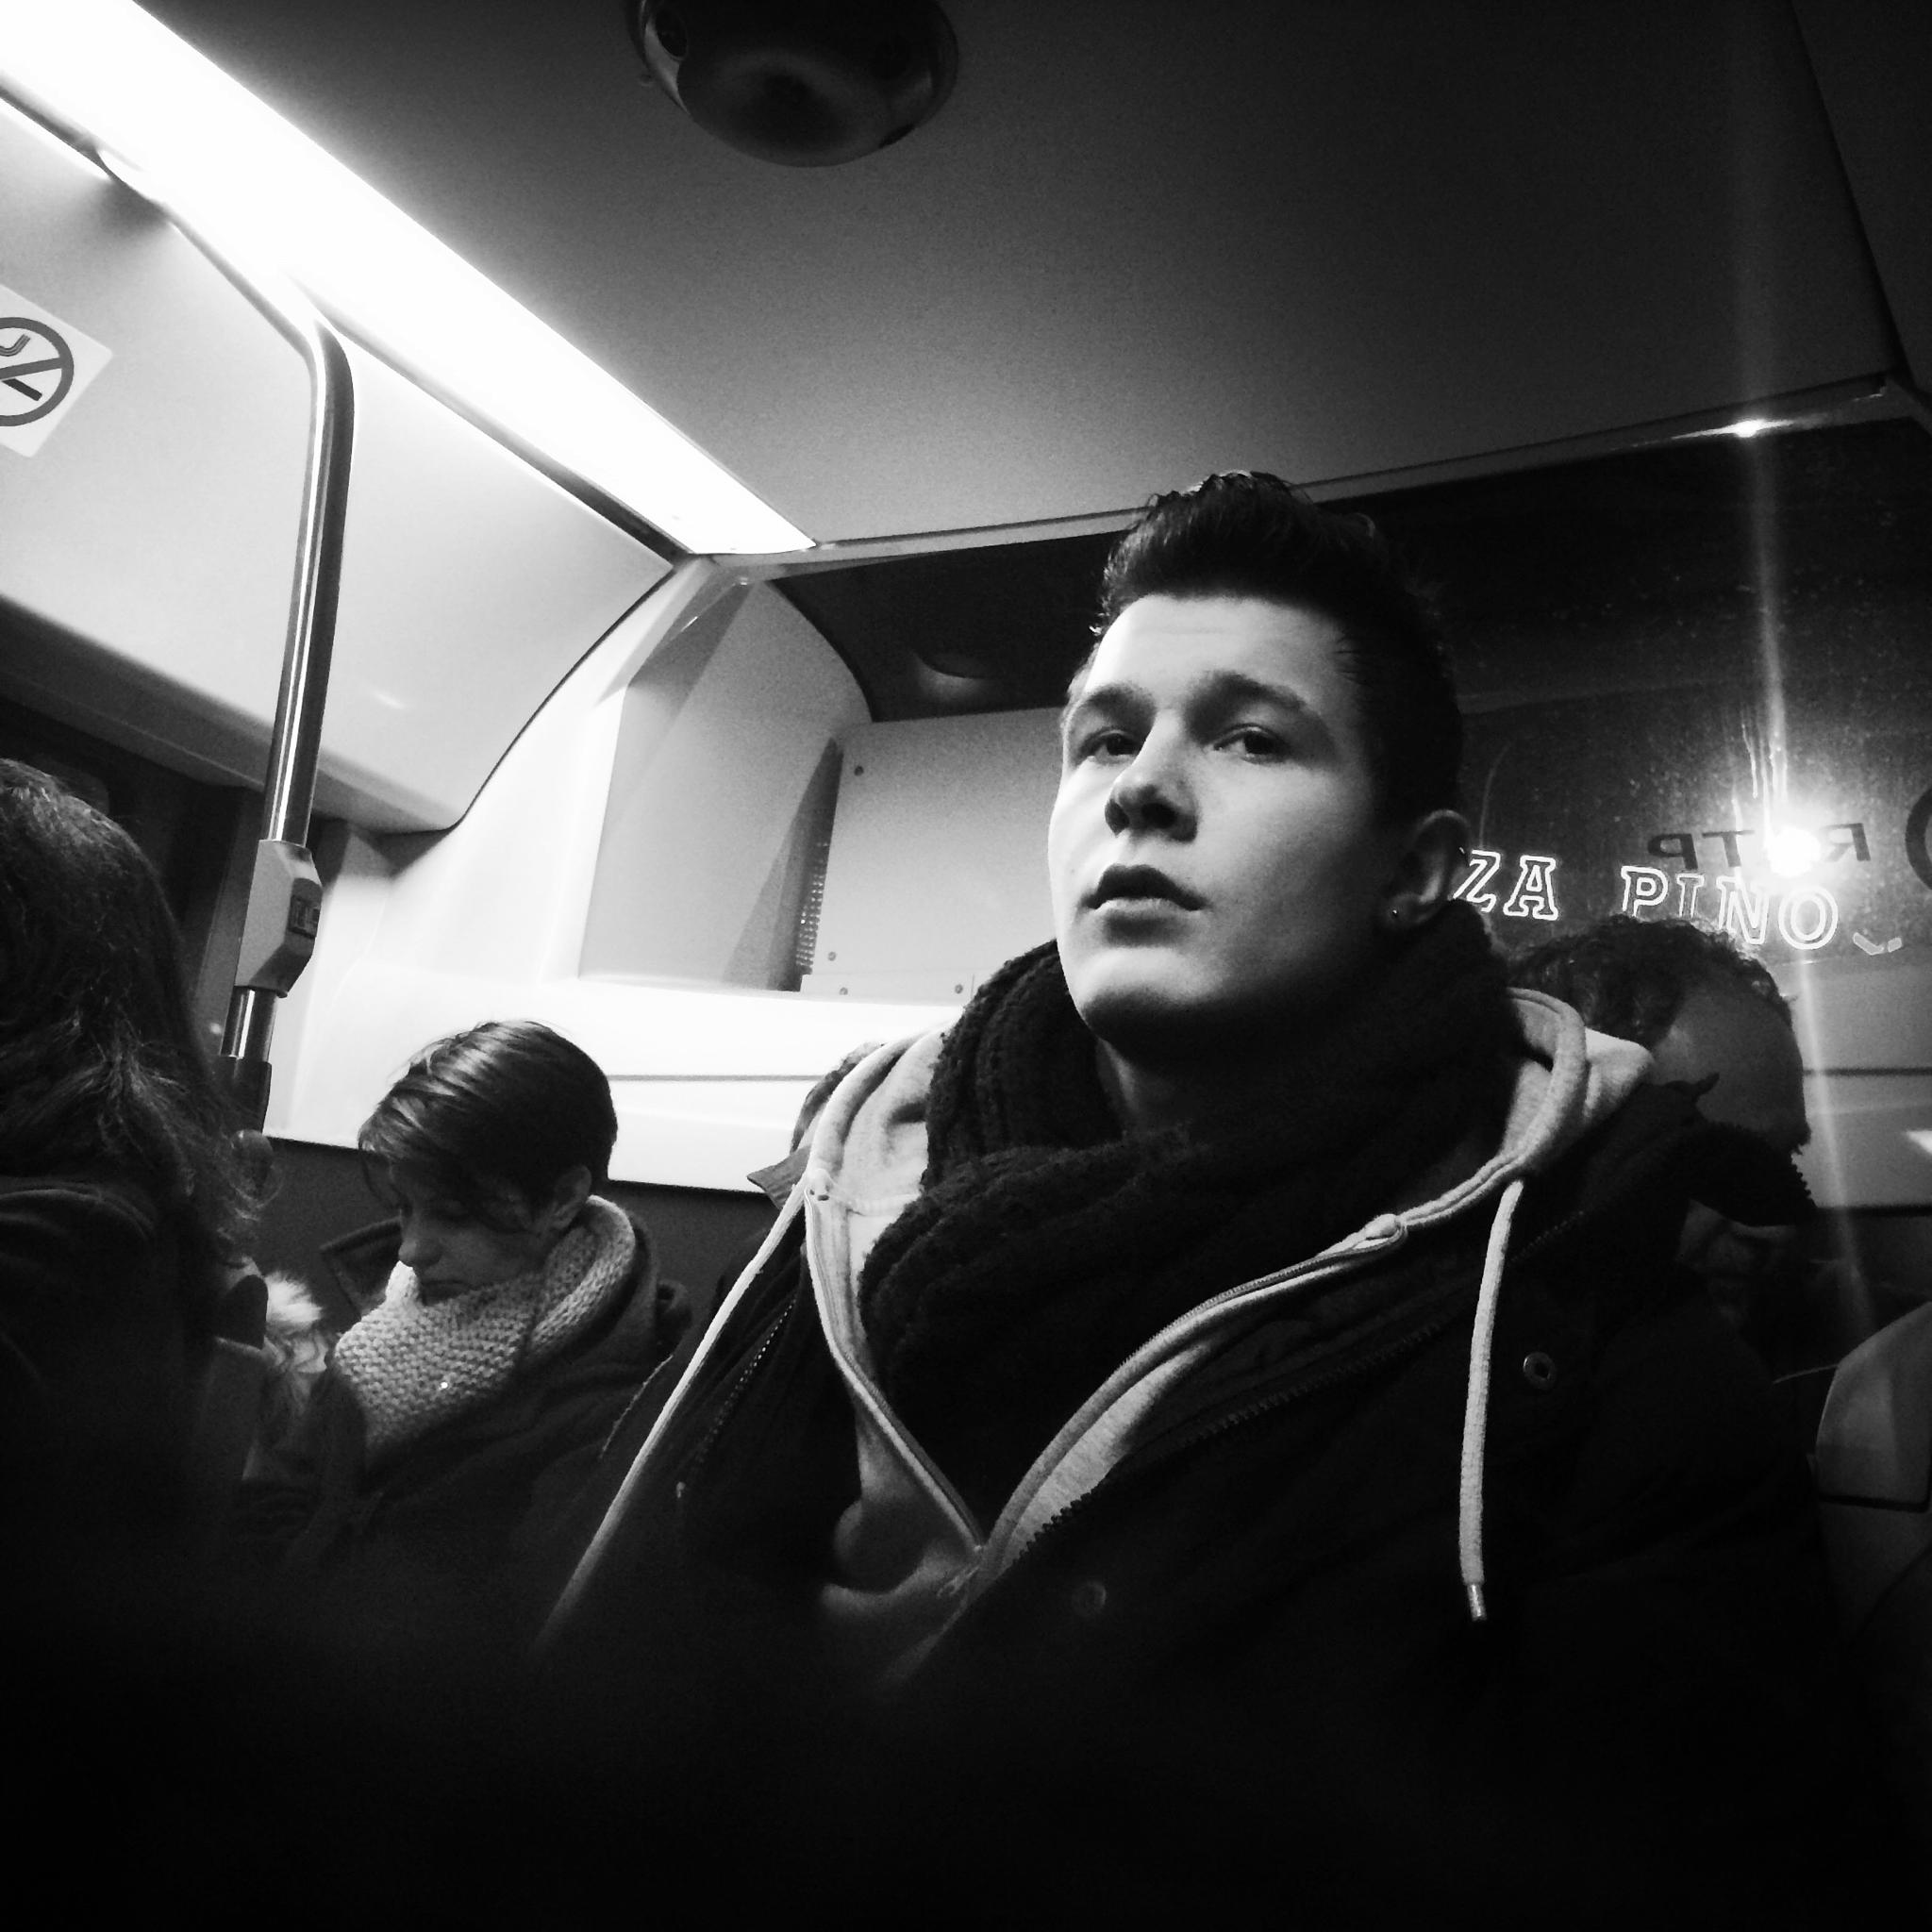 On the bus by parisfind